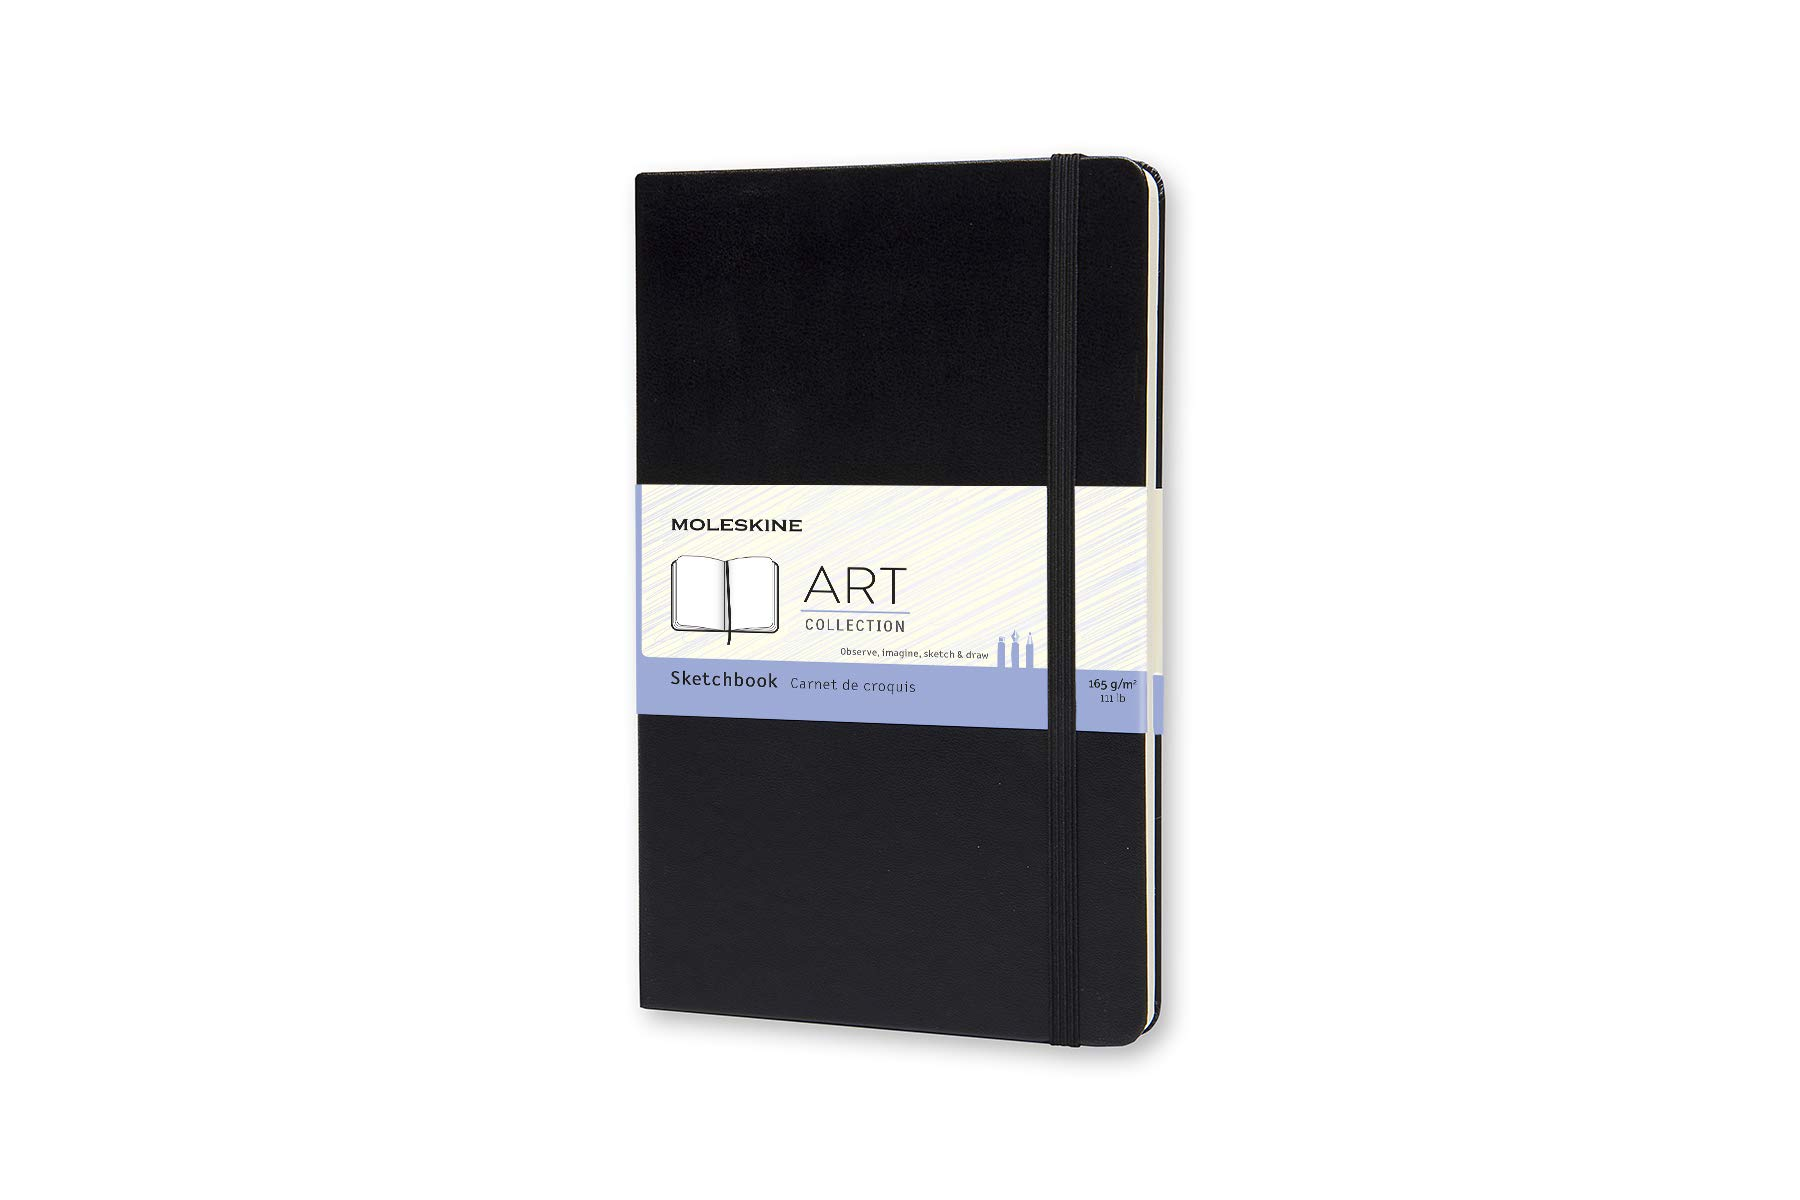 Moleskine Art Plus Hard Cover Sketchbook, Plain